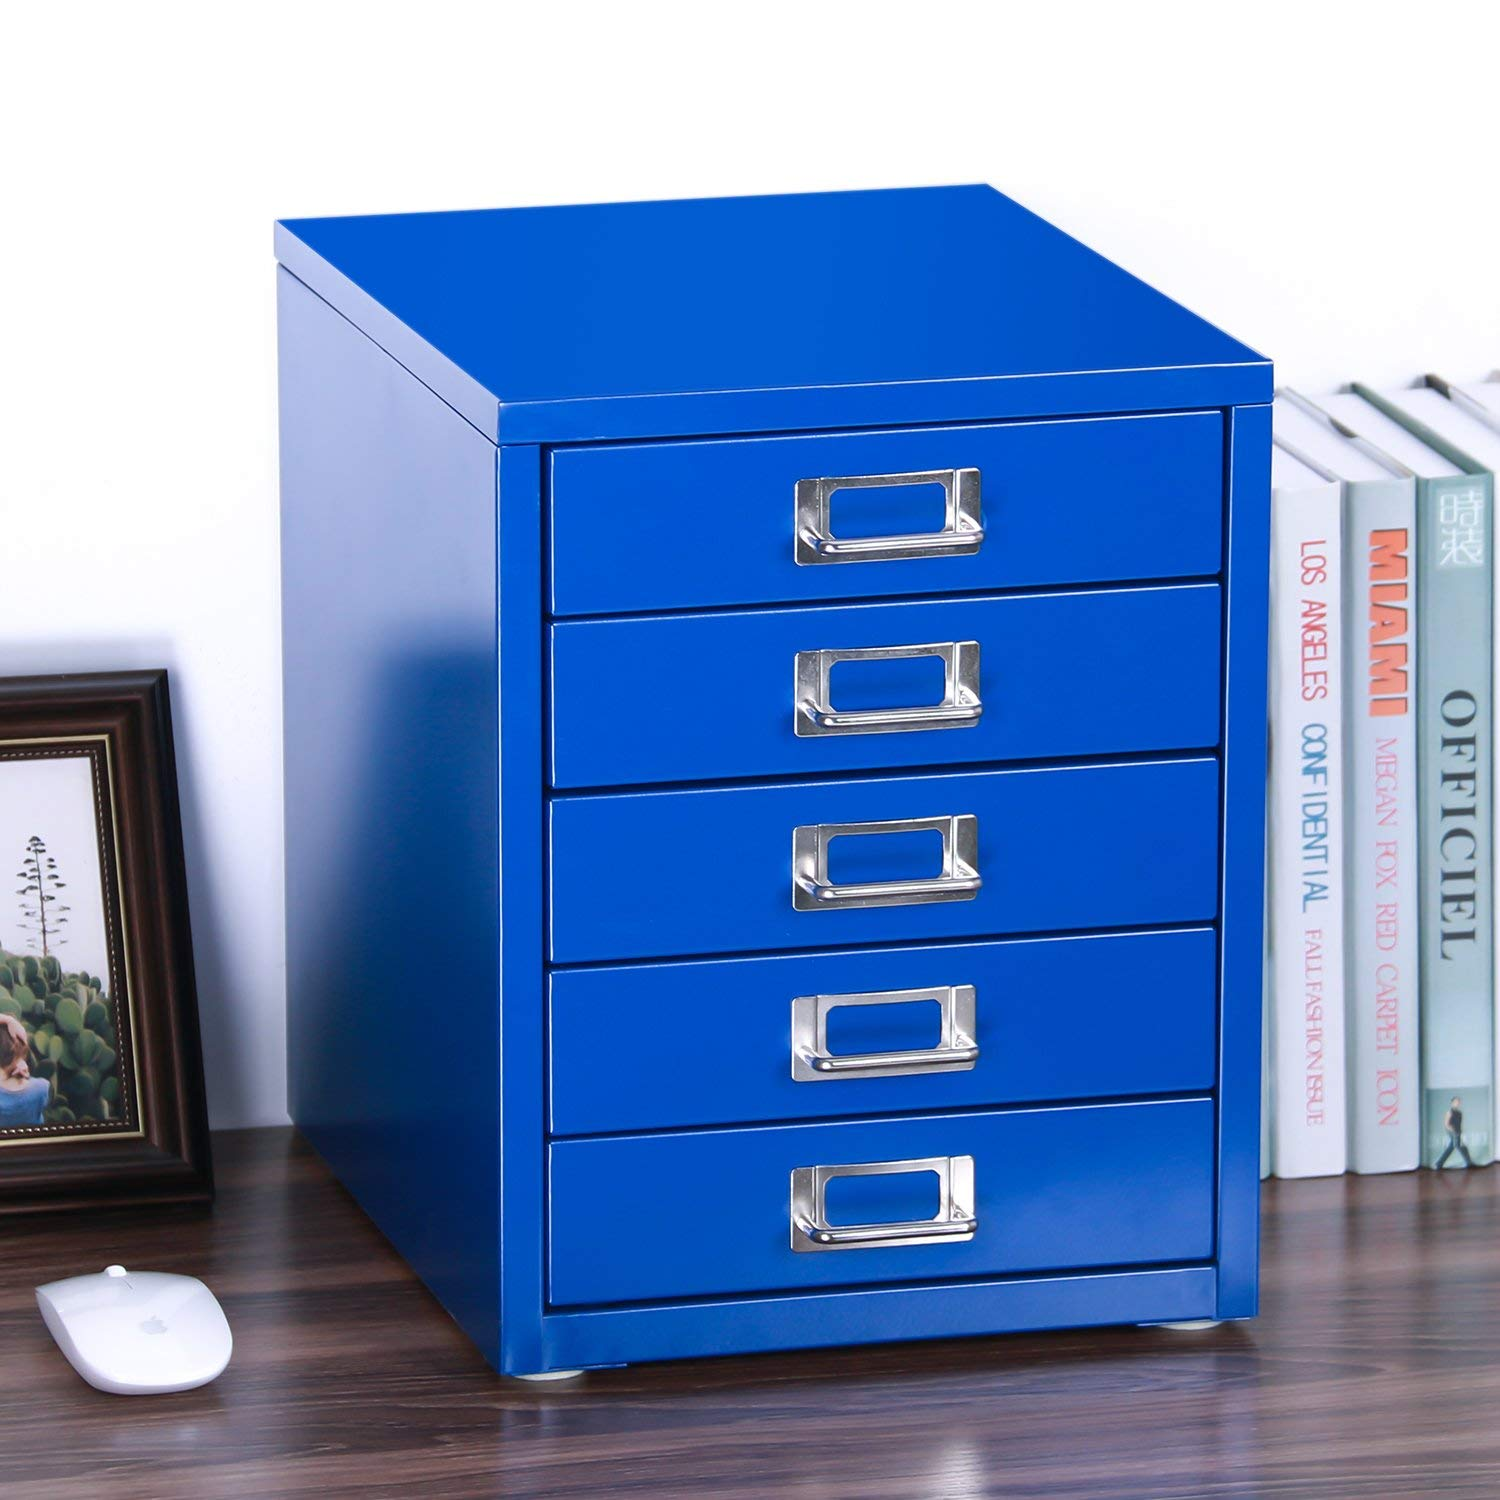 "Z PLINRISE Office File Cabinets 5-Drawer - Size: 13.8"" x 13.8"" x 11"" Metal Filing Cabinet Organizer for Craft/Document, Lateral File Cabinets 14 inch Height (Blue)"